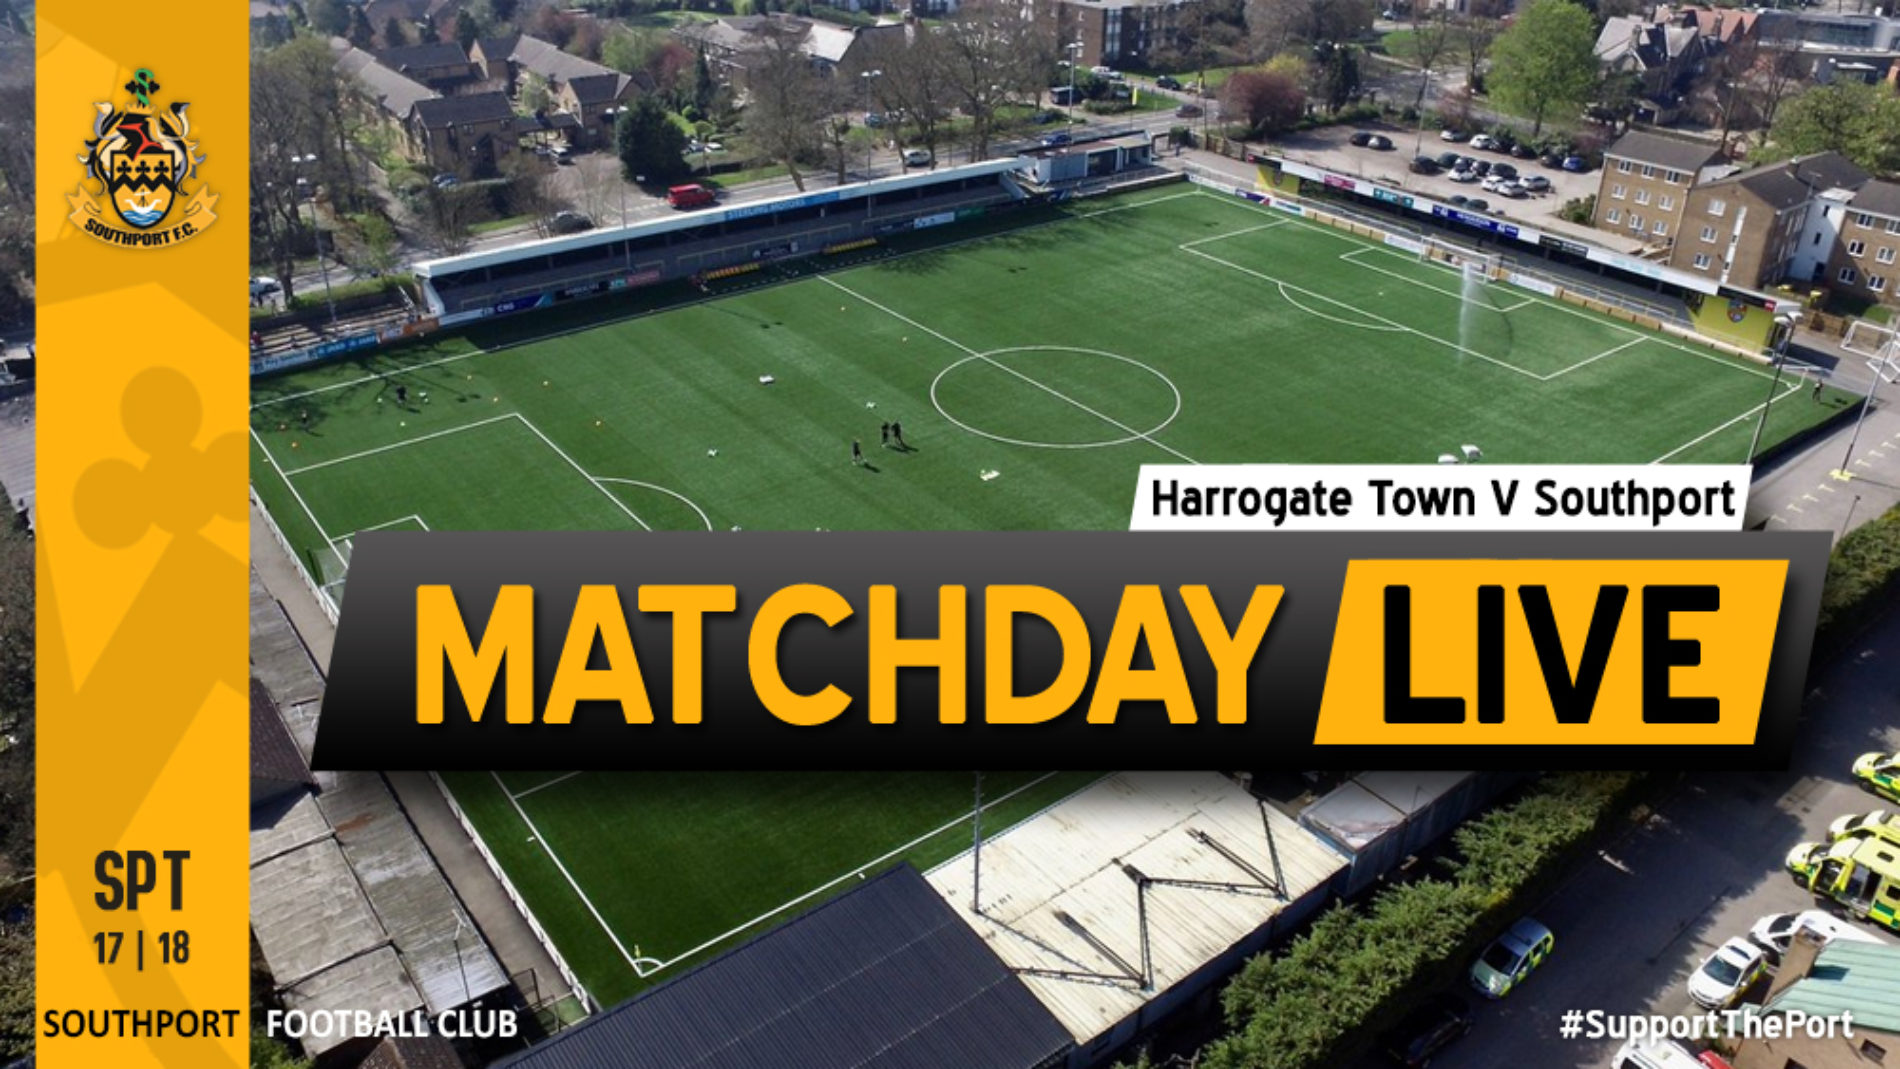 MATCHDAY LIVE | Harrogate Town V Southport